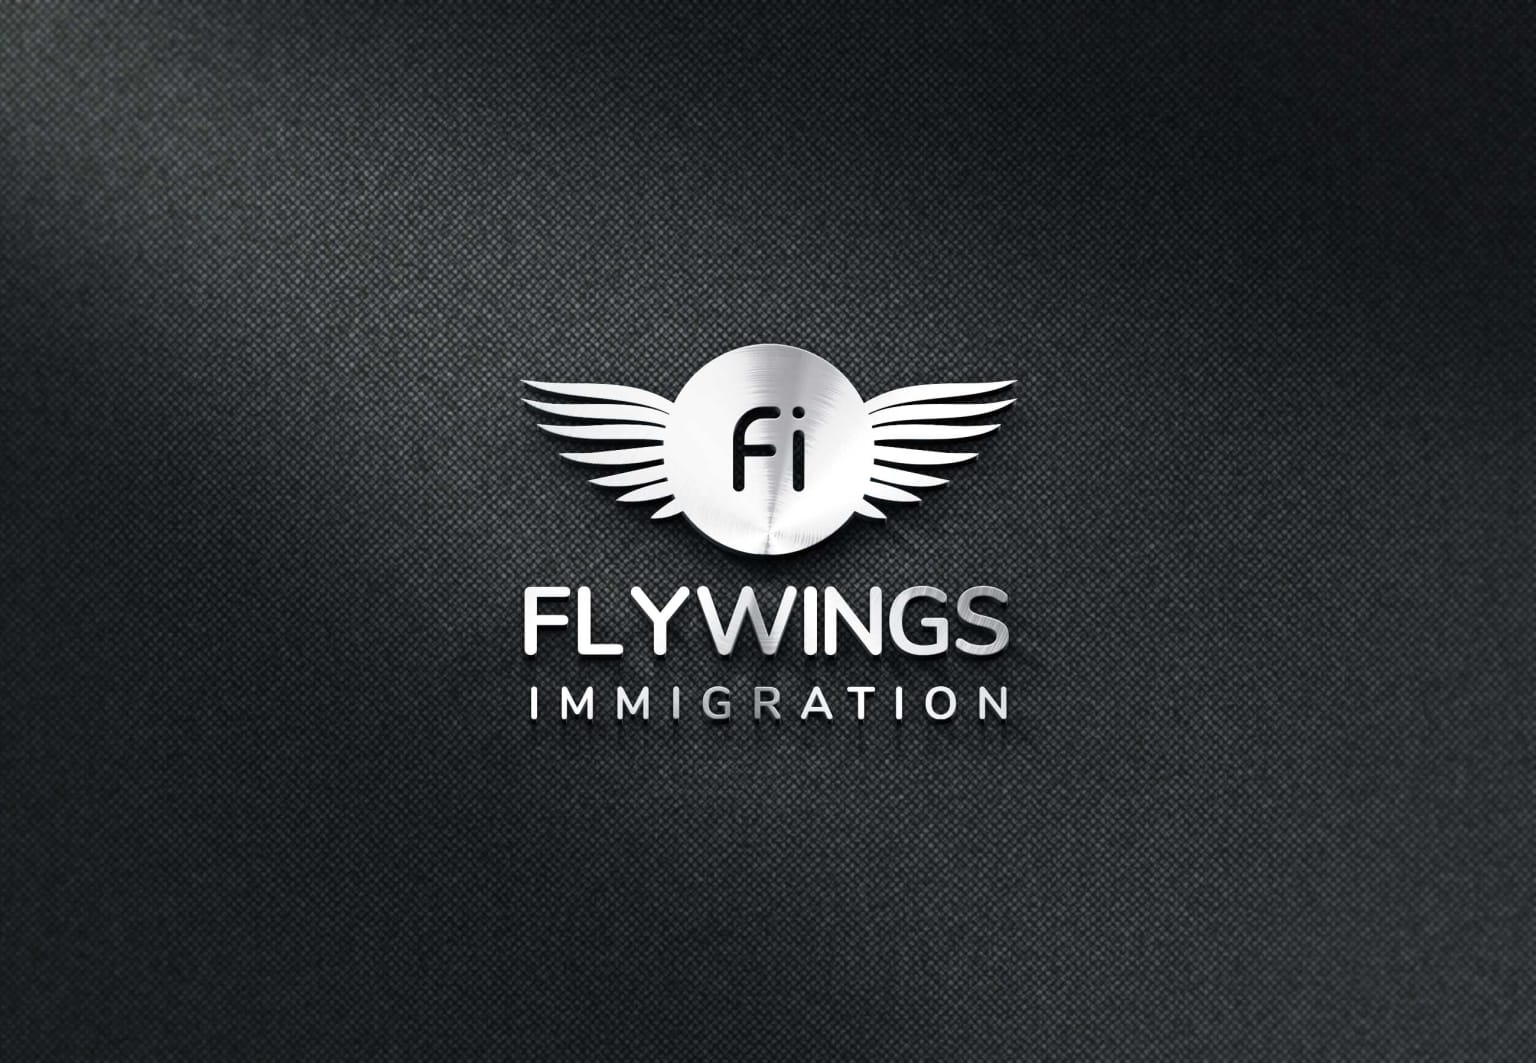 Flywings Immigrations Brand Identity